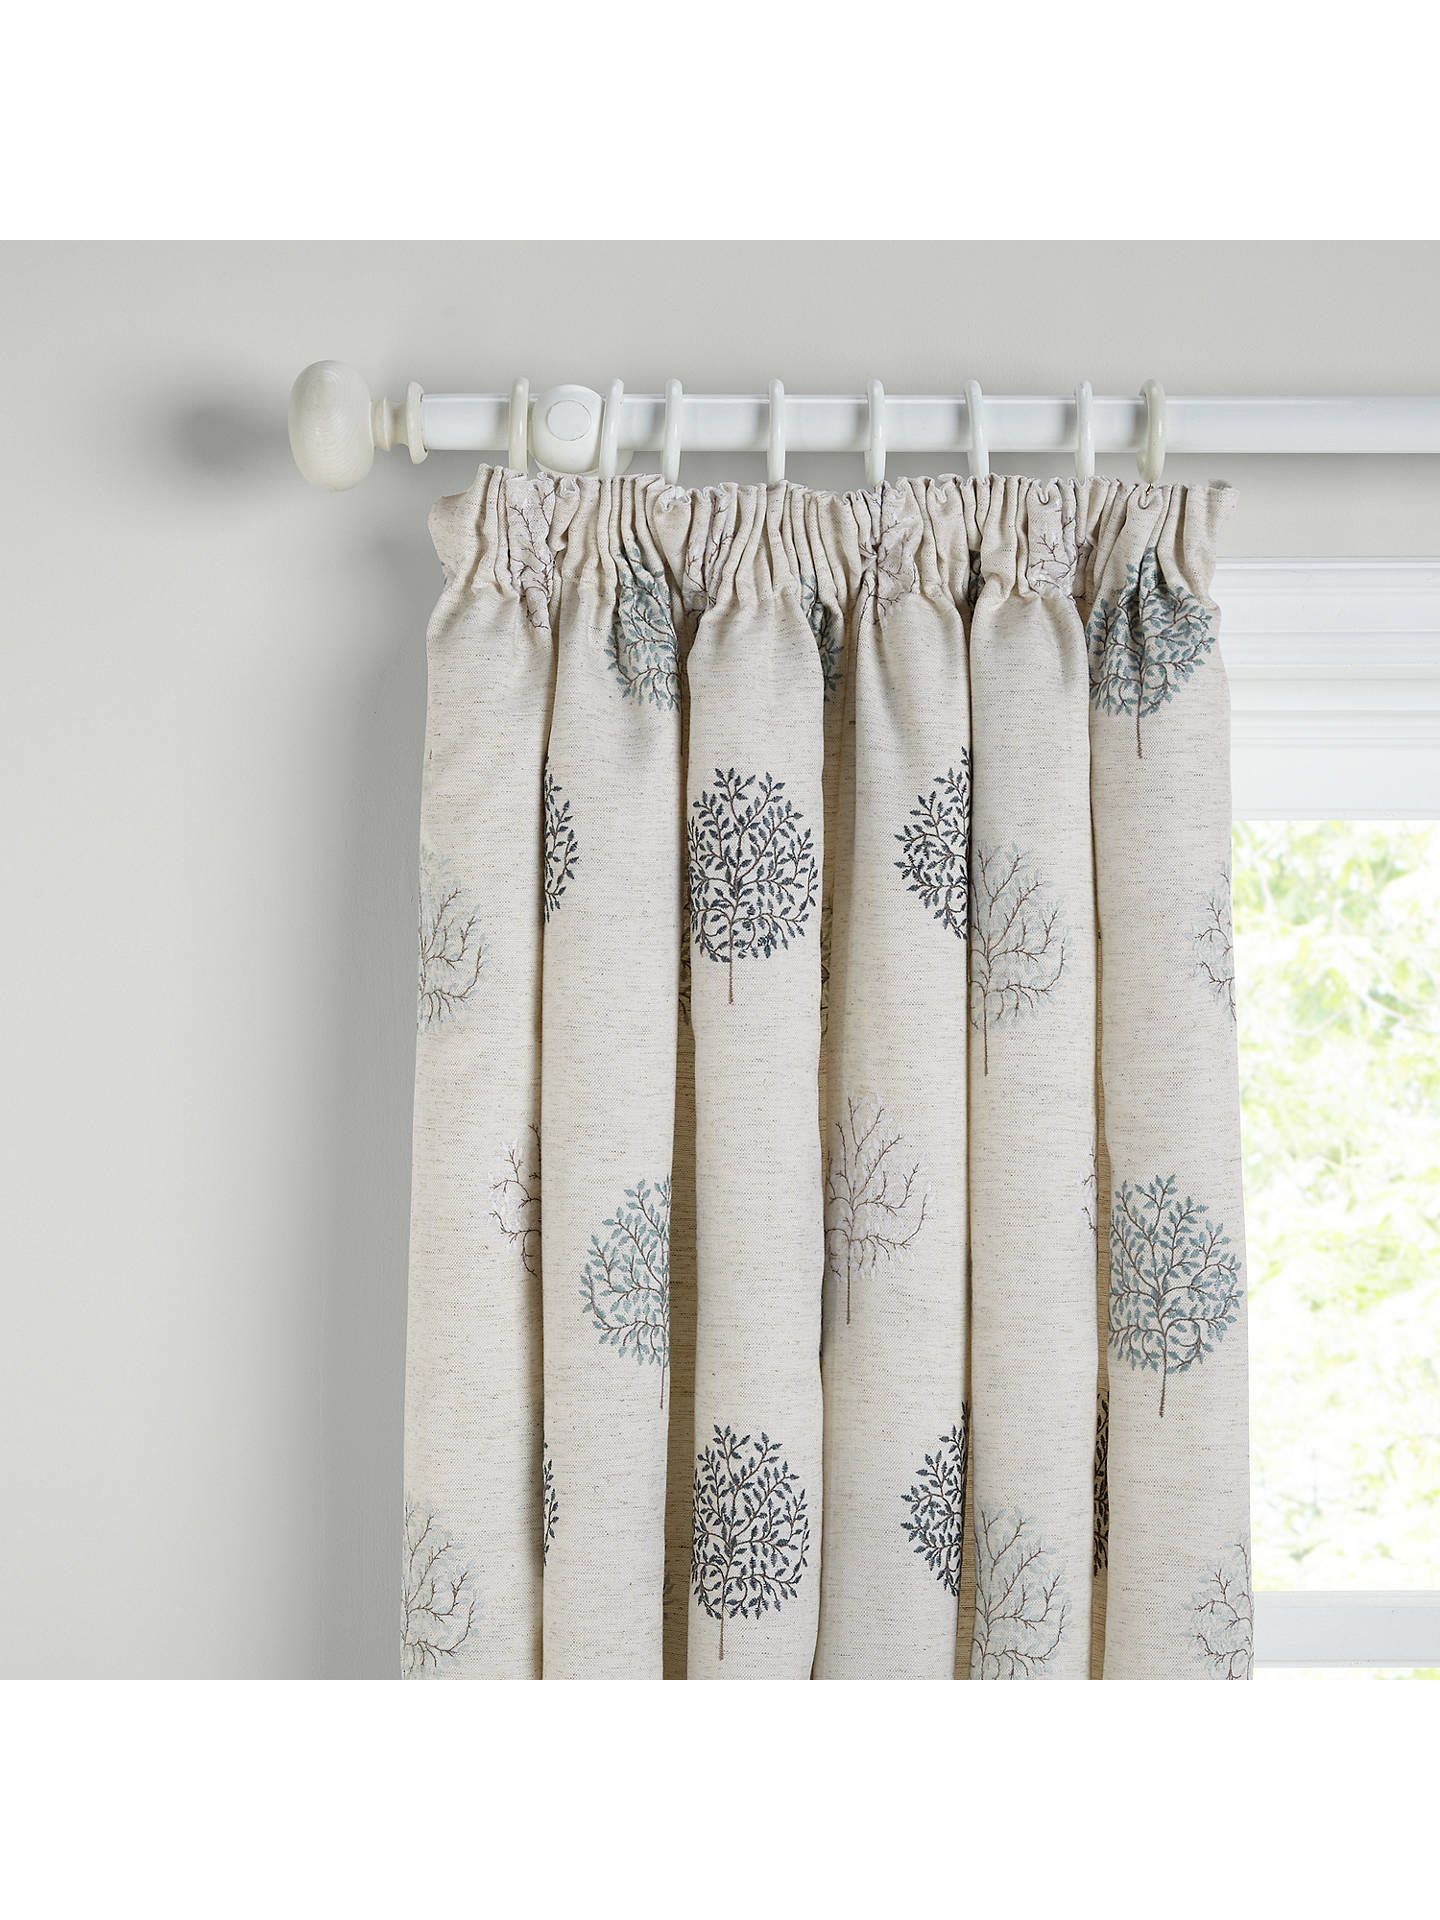 ... BuyJohn Lewis & Partners Mini Olive Trees Pair Lined Pencil Pleat Curtains, Duck Egg, ...